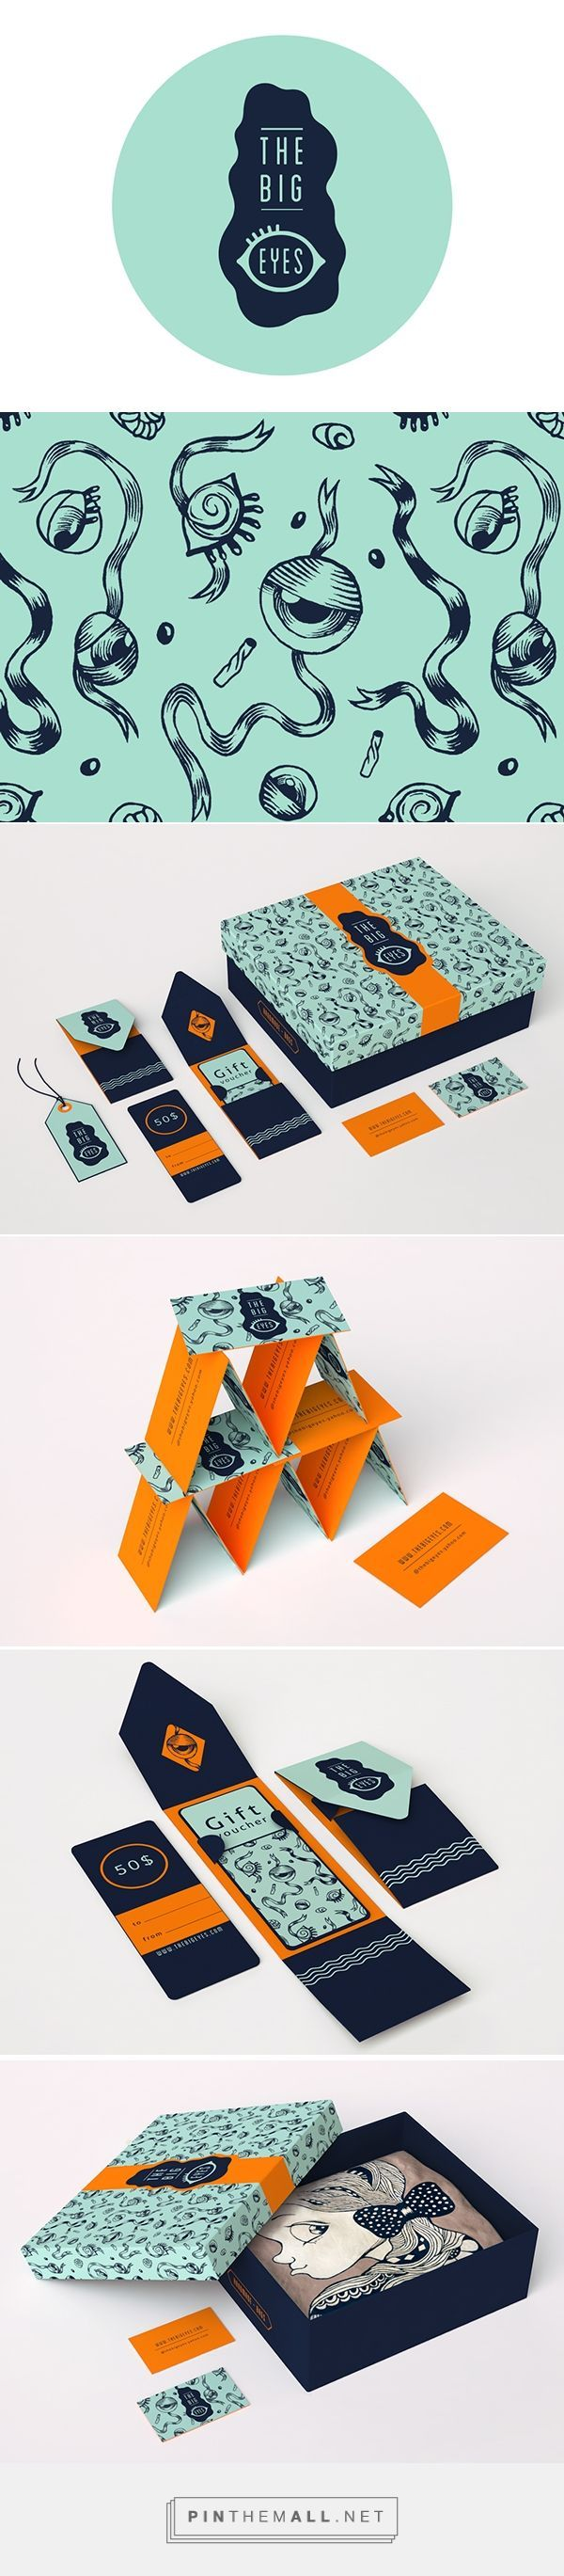 THEBIGEYES on Behance by lo Anto curated by Packaging Diva PD. Branding and packaging design THEBIGEYES handmade shop specialized in creating beautiful and unique pieces of handmade items. A